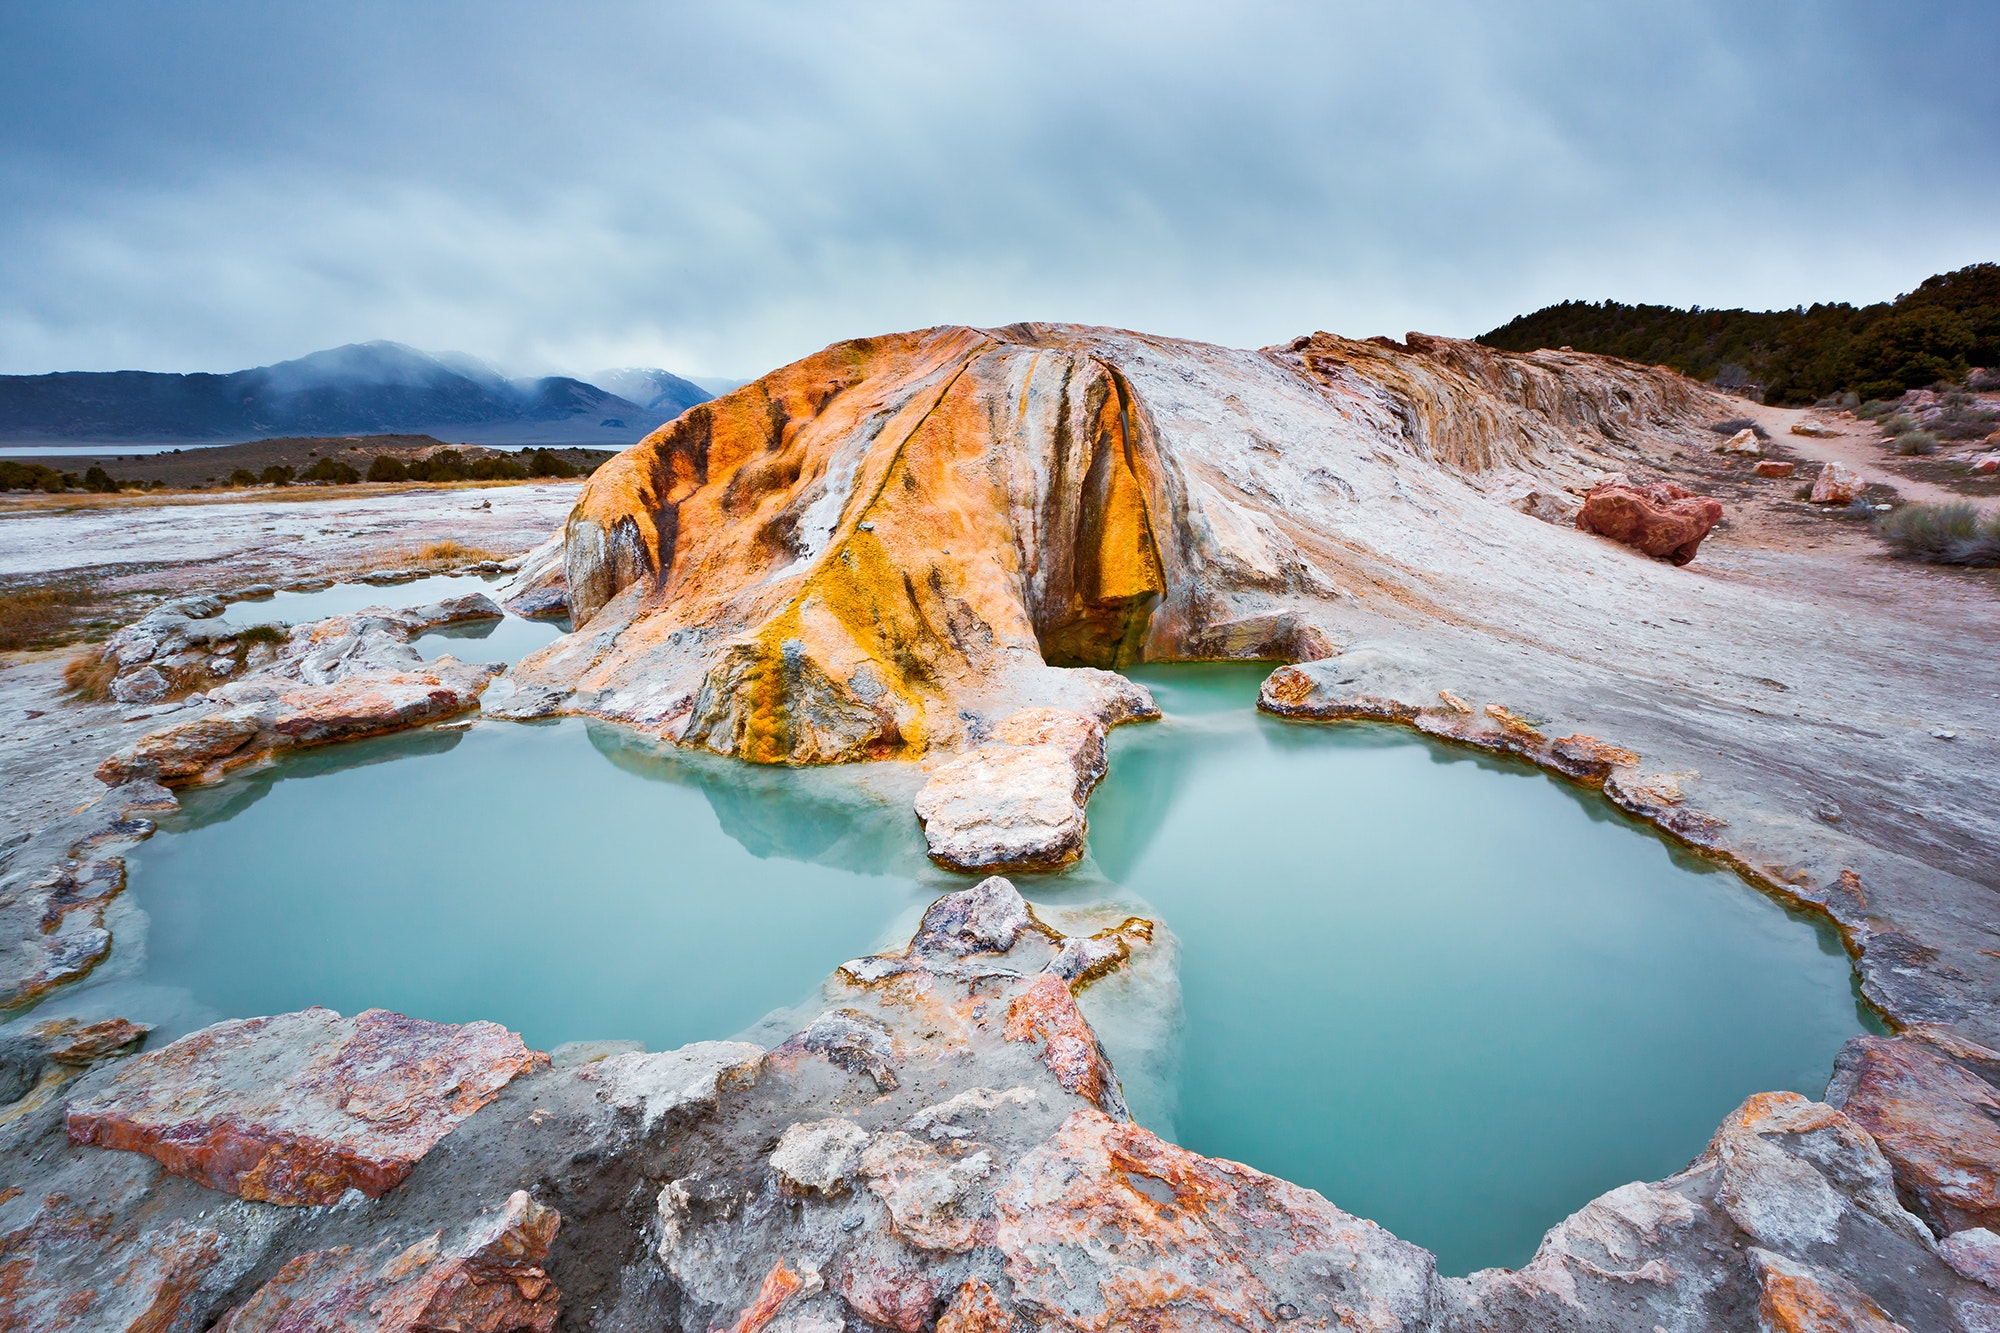 The rocks at Travertine Hot Springs have a streaked patina from the mineral-rich water.